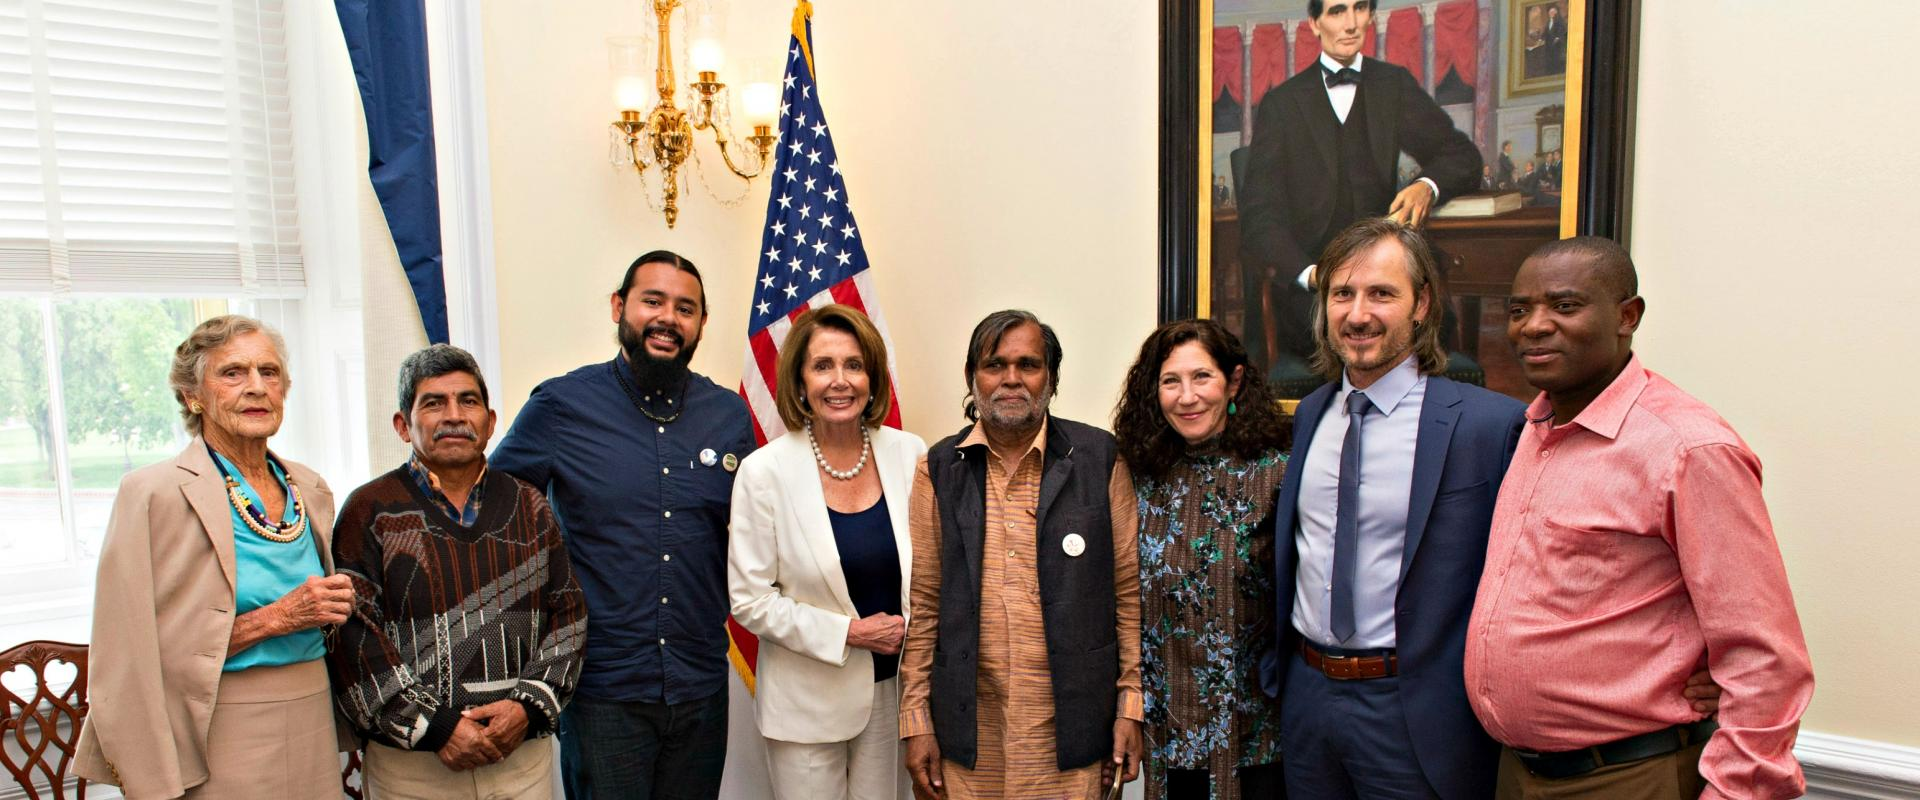 Congresswoman Pelosi meets with Susie Gelman and the 2017 winners of Goldman Environmental Prize, honoring grassroot environmental heroes who have contributed sustained and significant efforts to protect their communities and enhance the natural environme